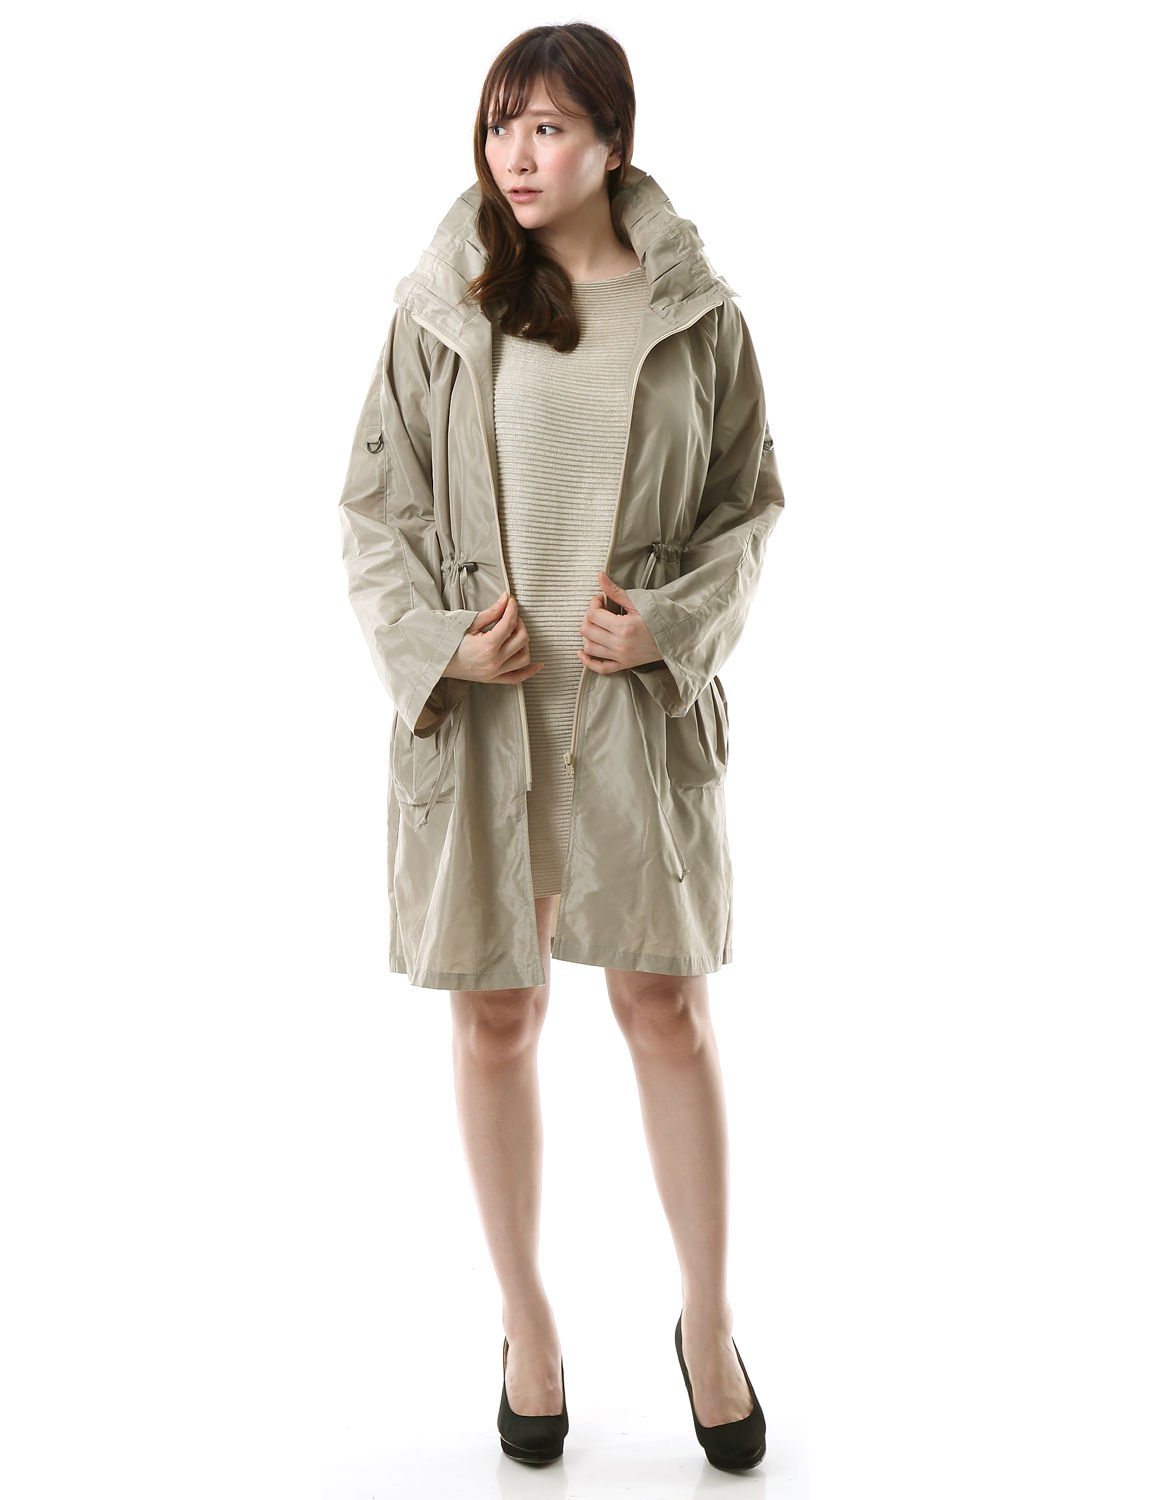 Chic & Elegant High count Knee-length Coat, Great for Business Occasions, Beige M.